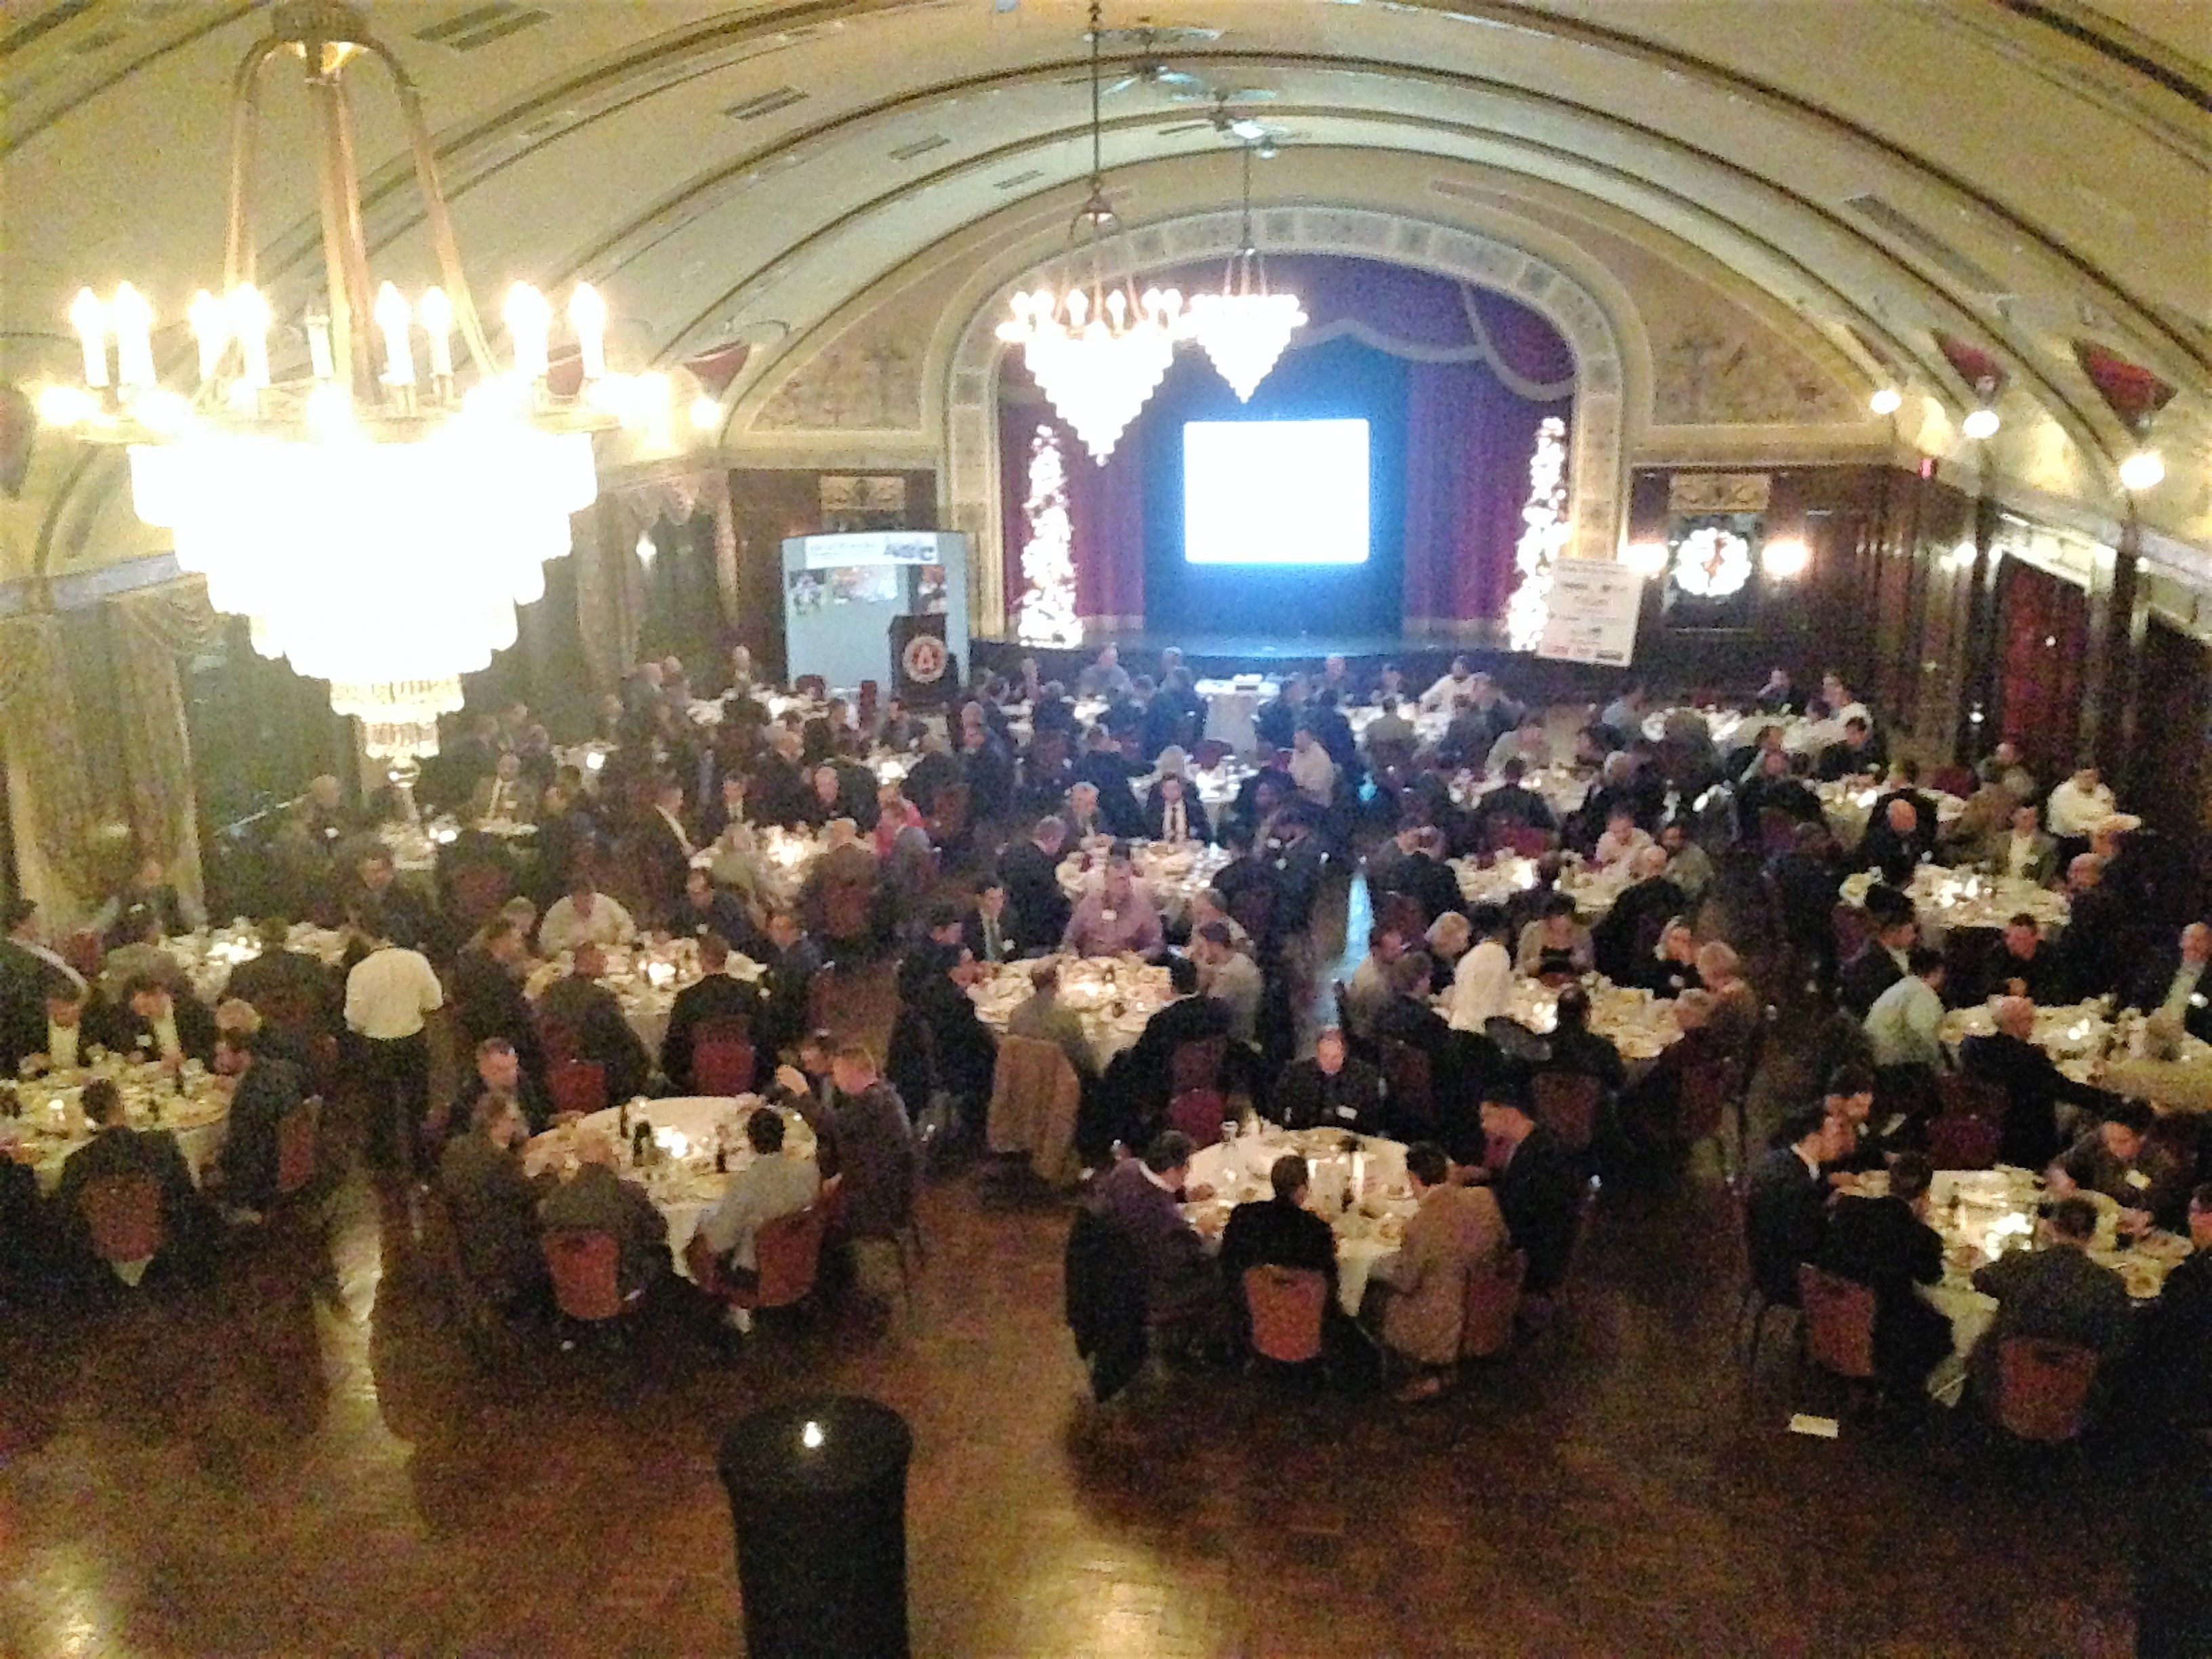 The AGC Annual Meeting and Networking Dinner Sets Record Attendance